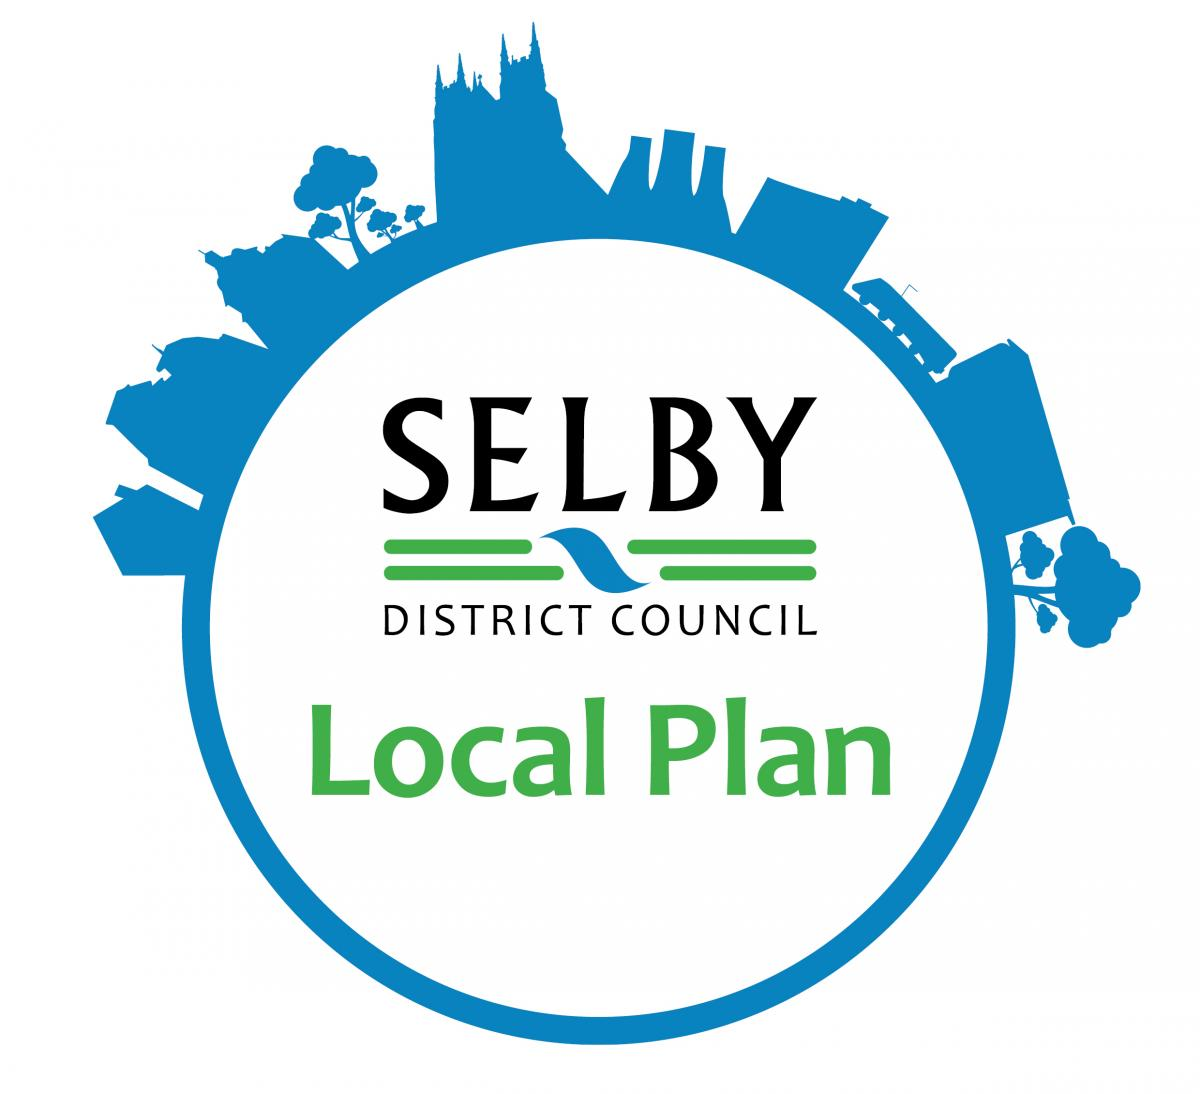 Selby District Council Planning Logo